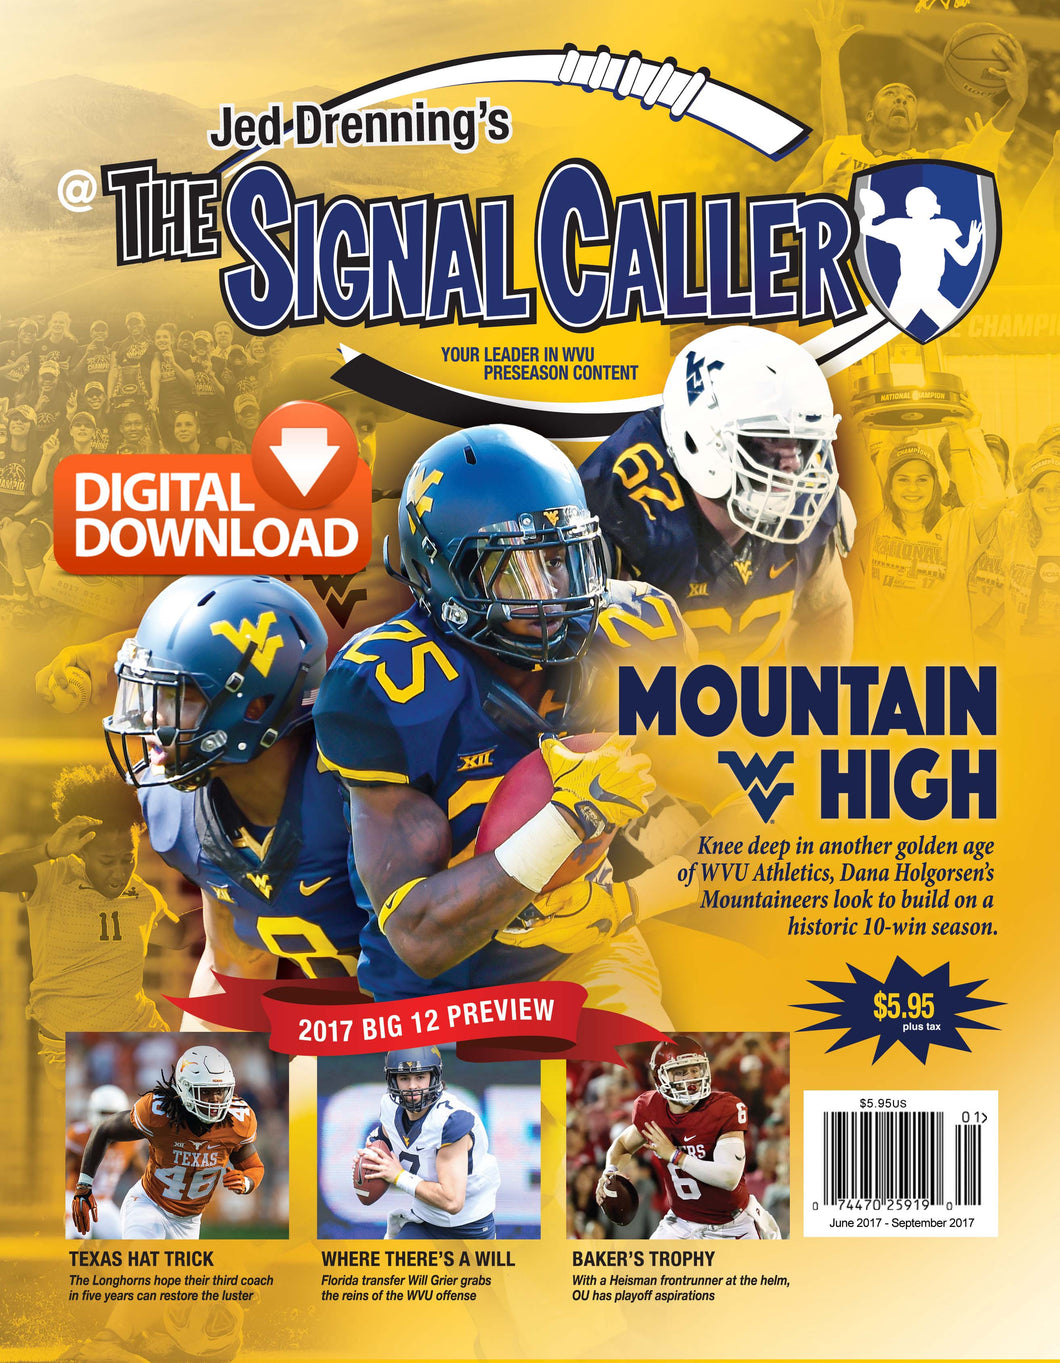 2017 WVU DIGITAL DOWNLOAD - THE SIGNAL CALLER MAGAZINE - 140 FULL COLOR PAGES